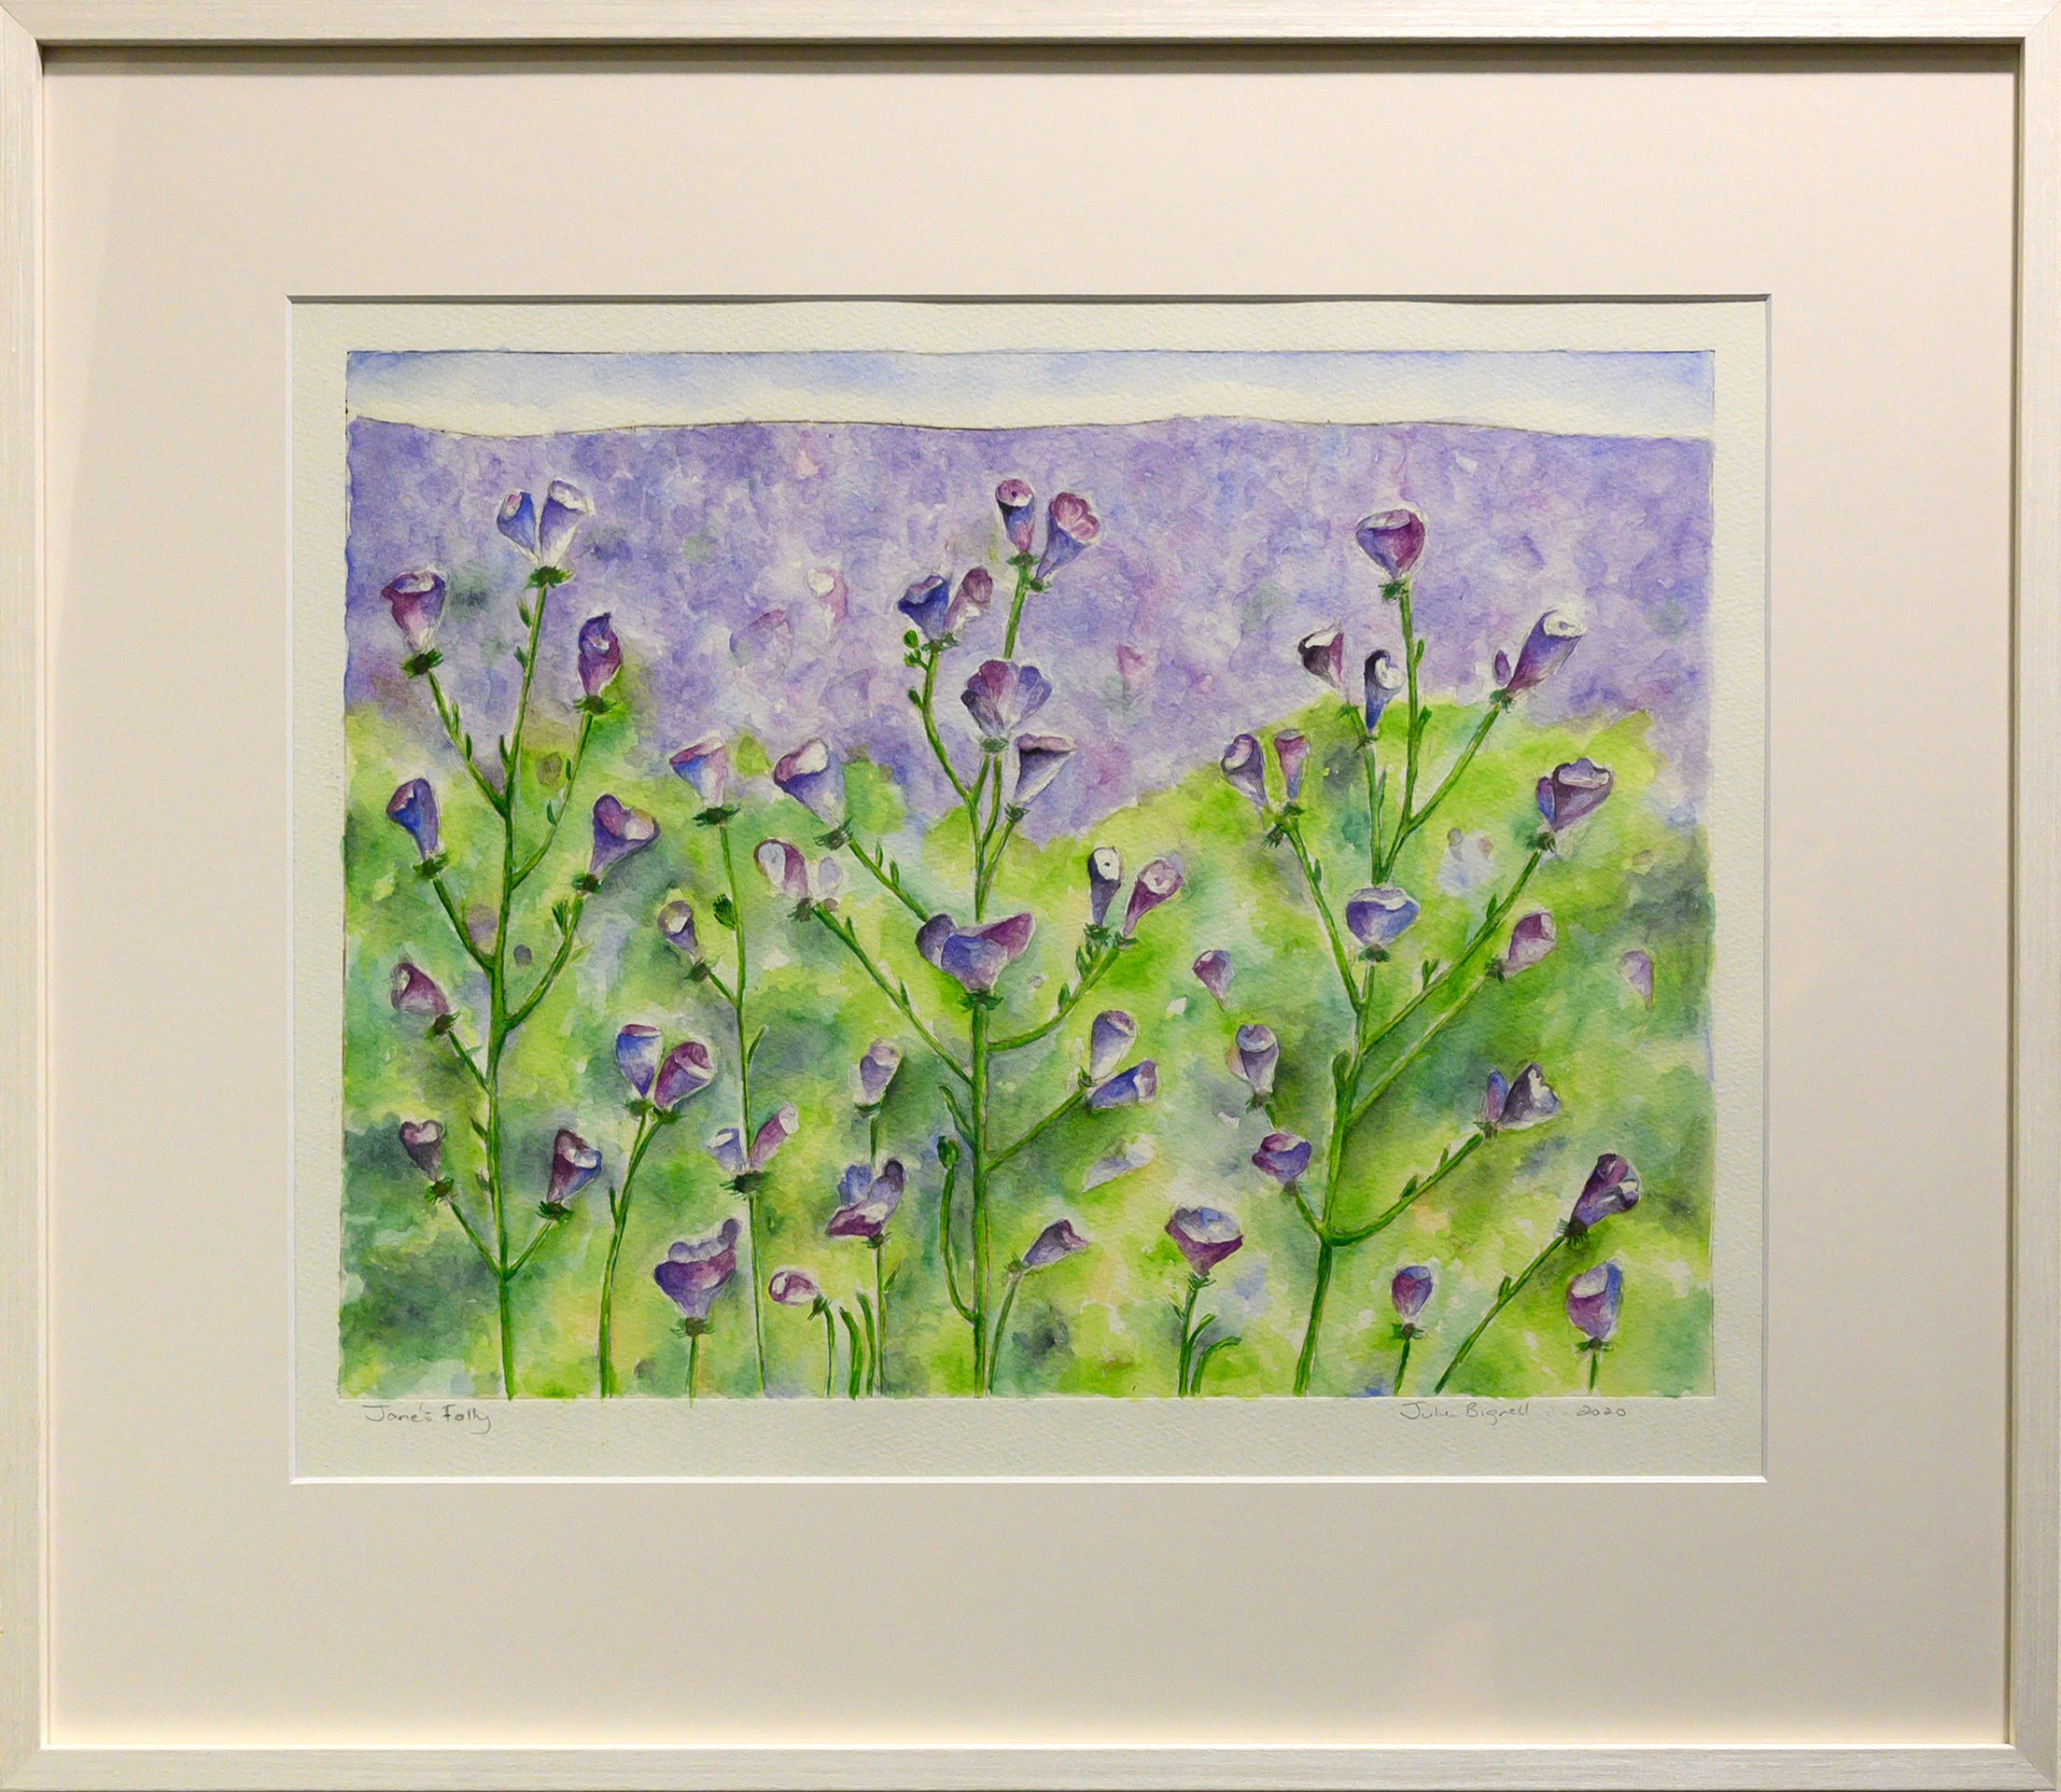 Framed artwork by Julie Bignell of purple flowers in the foreground with a green and purple background